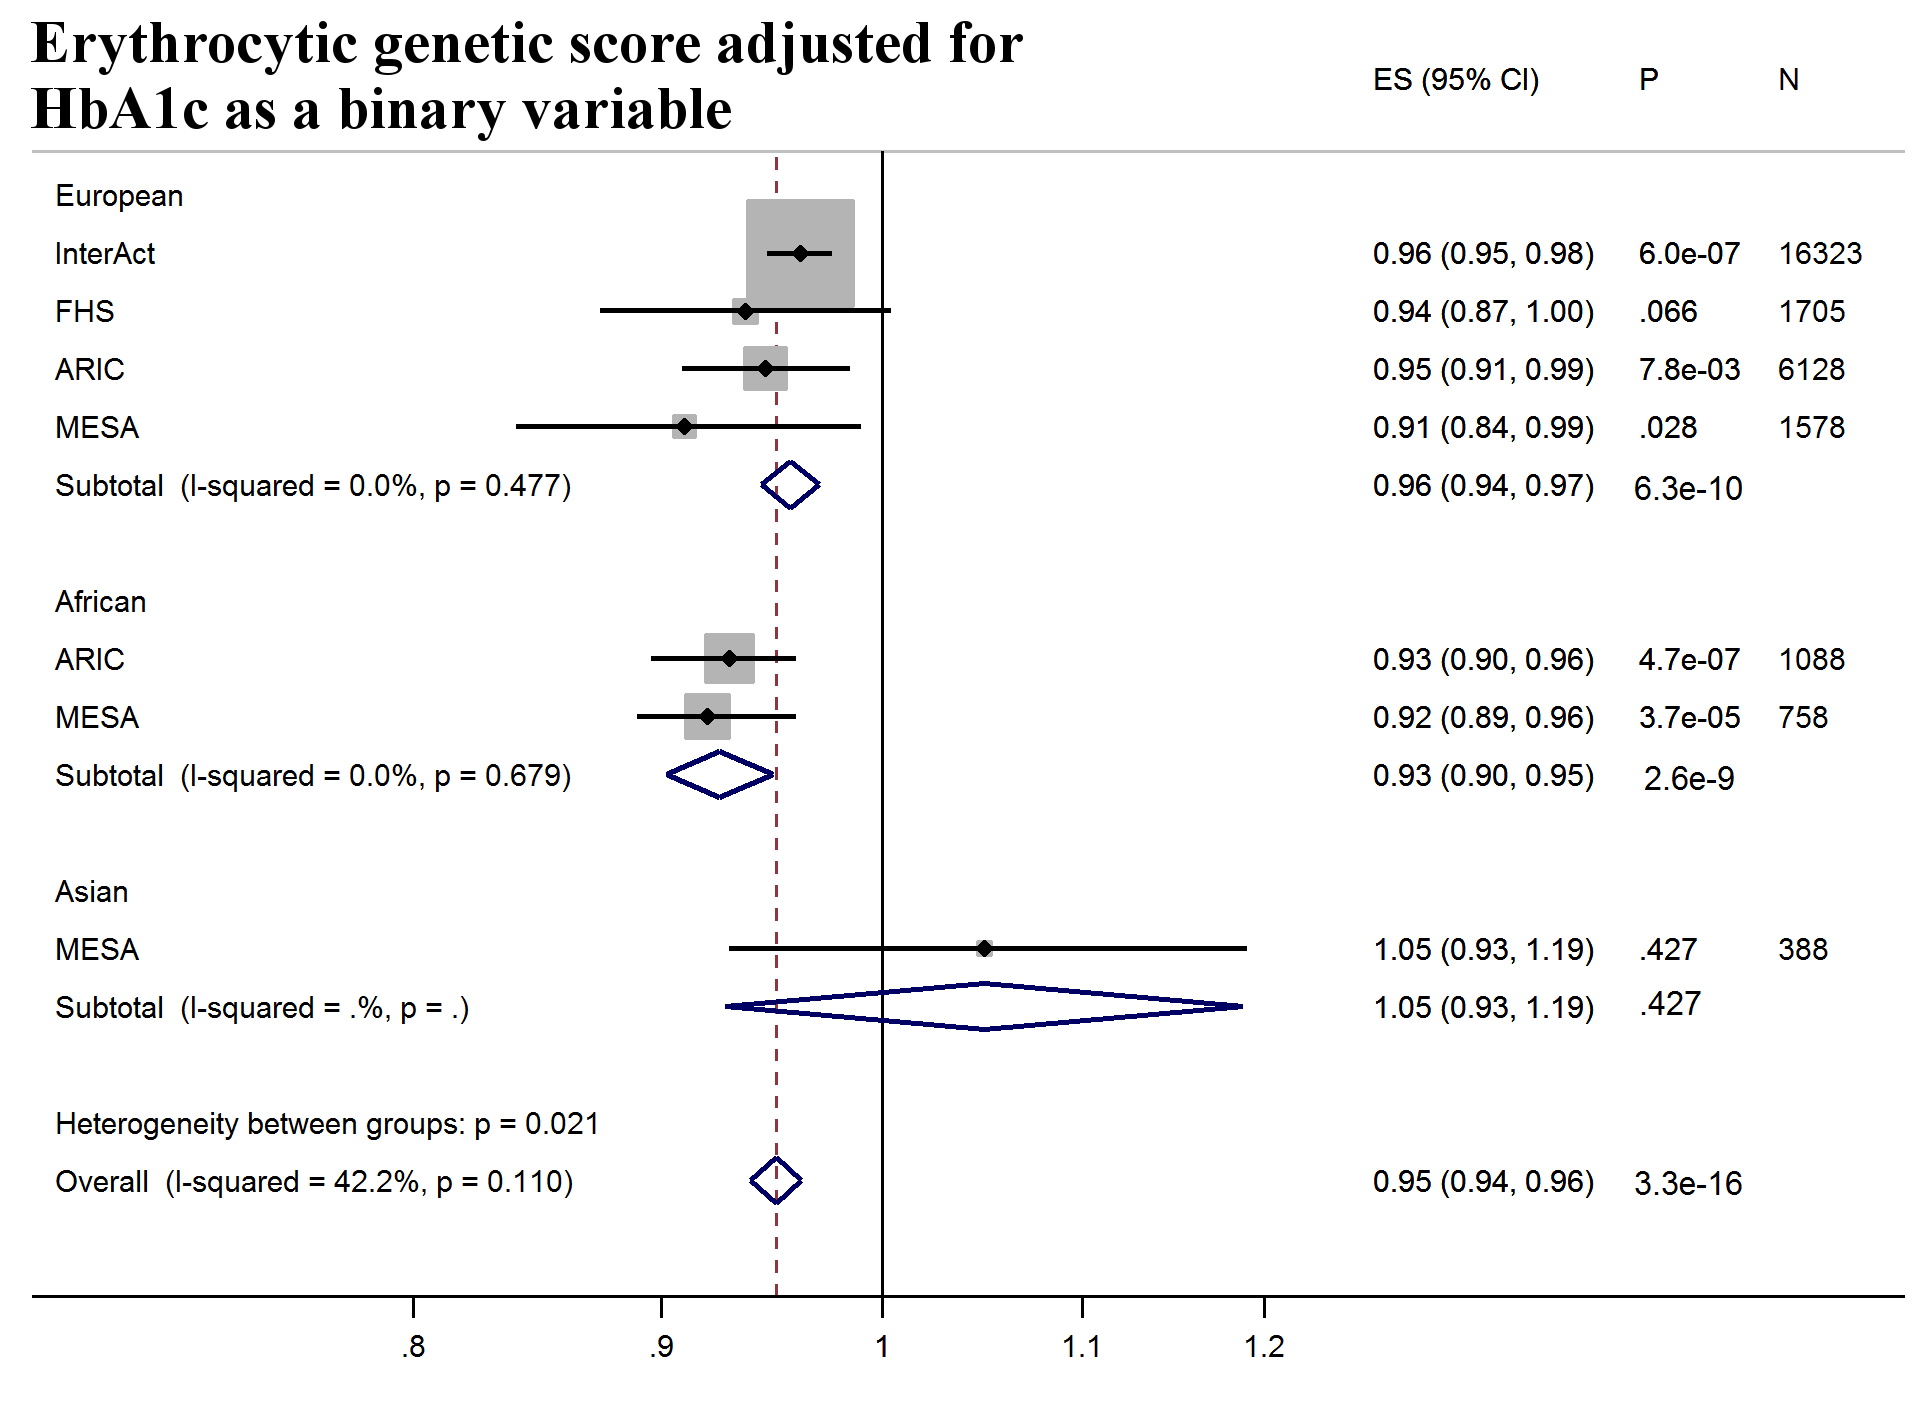 T2D prediction, erythrocytic genetic score adjusted for HbA1c as a binary variable.